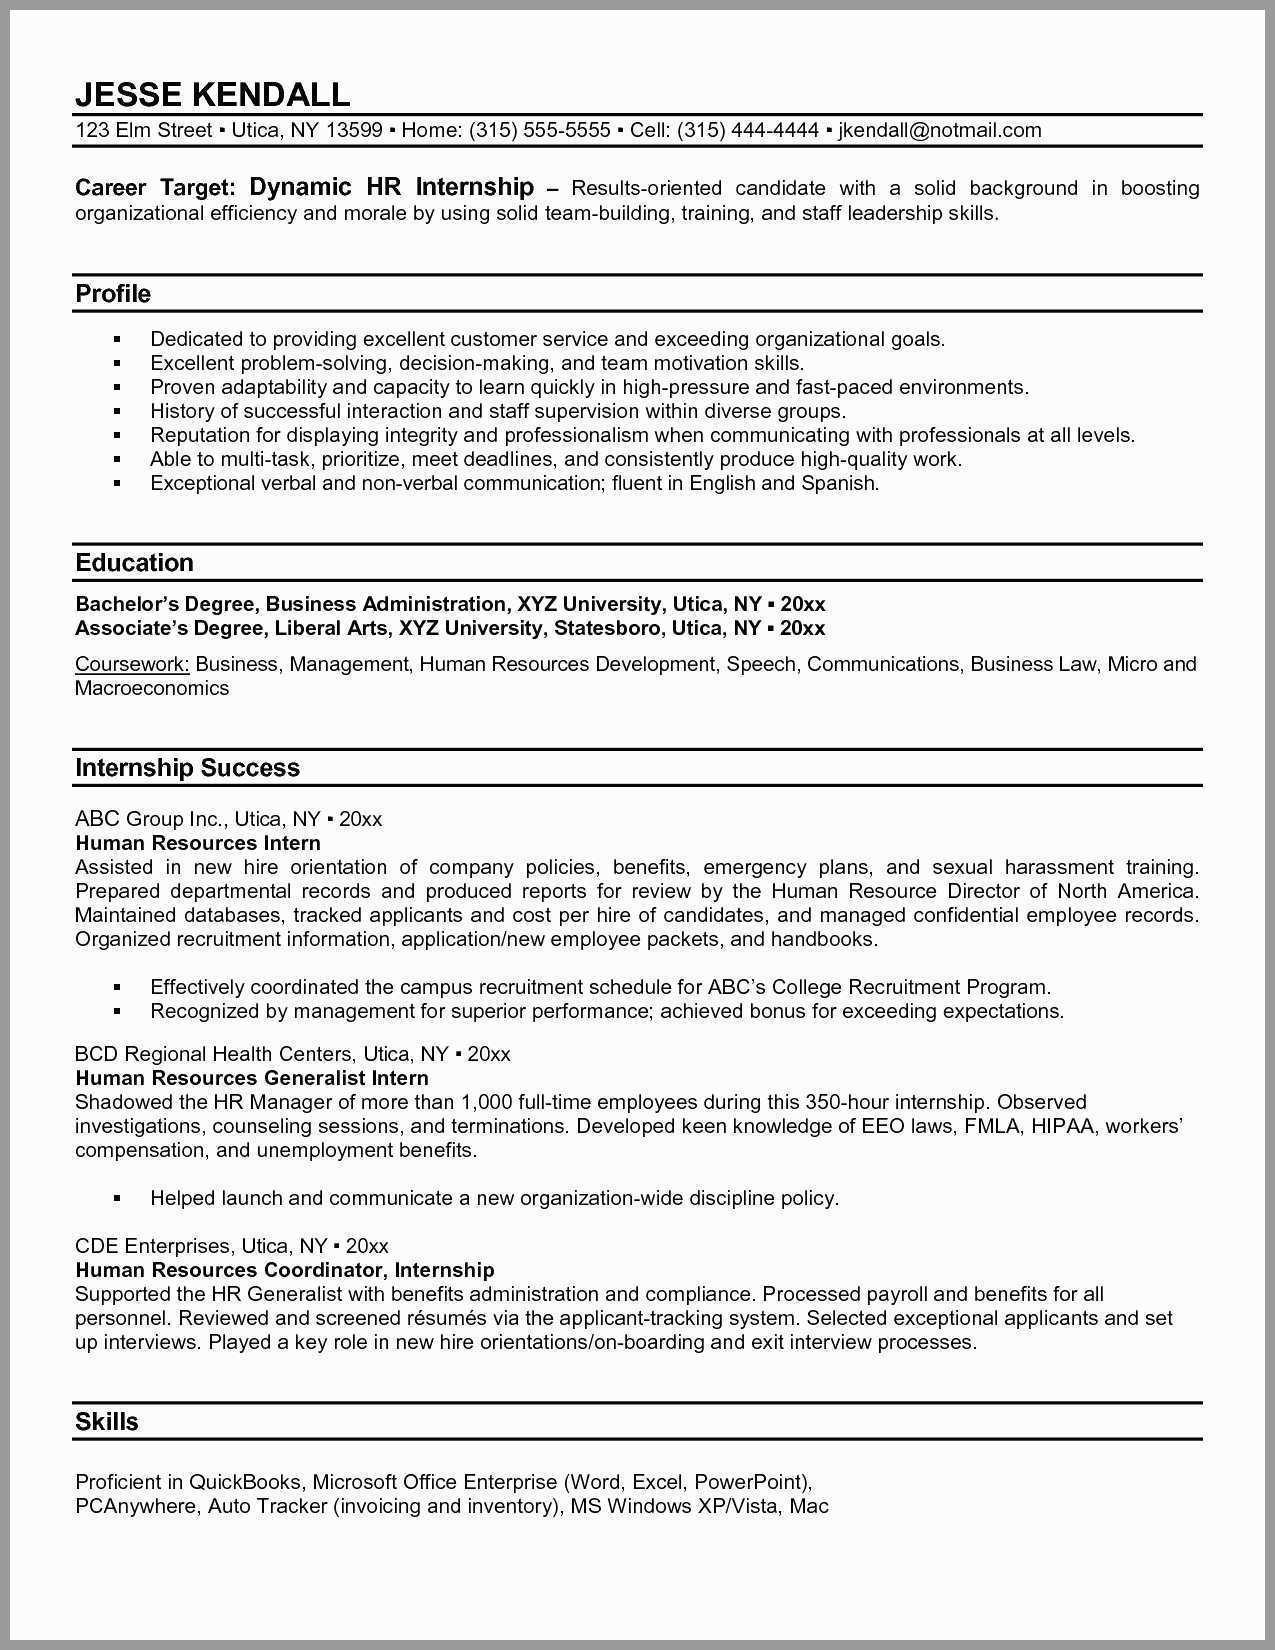 Exit Interview Tracking Spreadsheet In Applicant Tracking